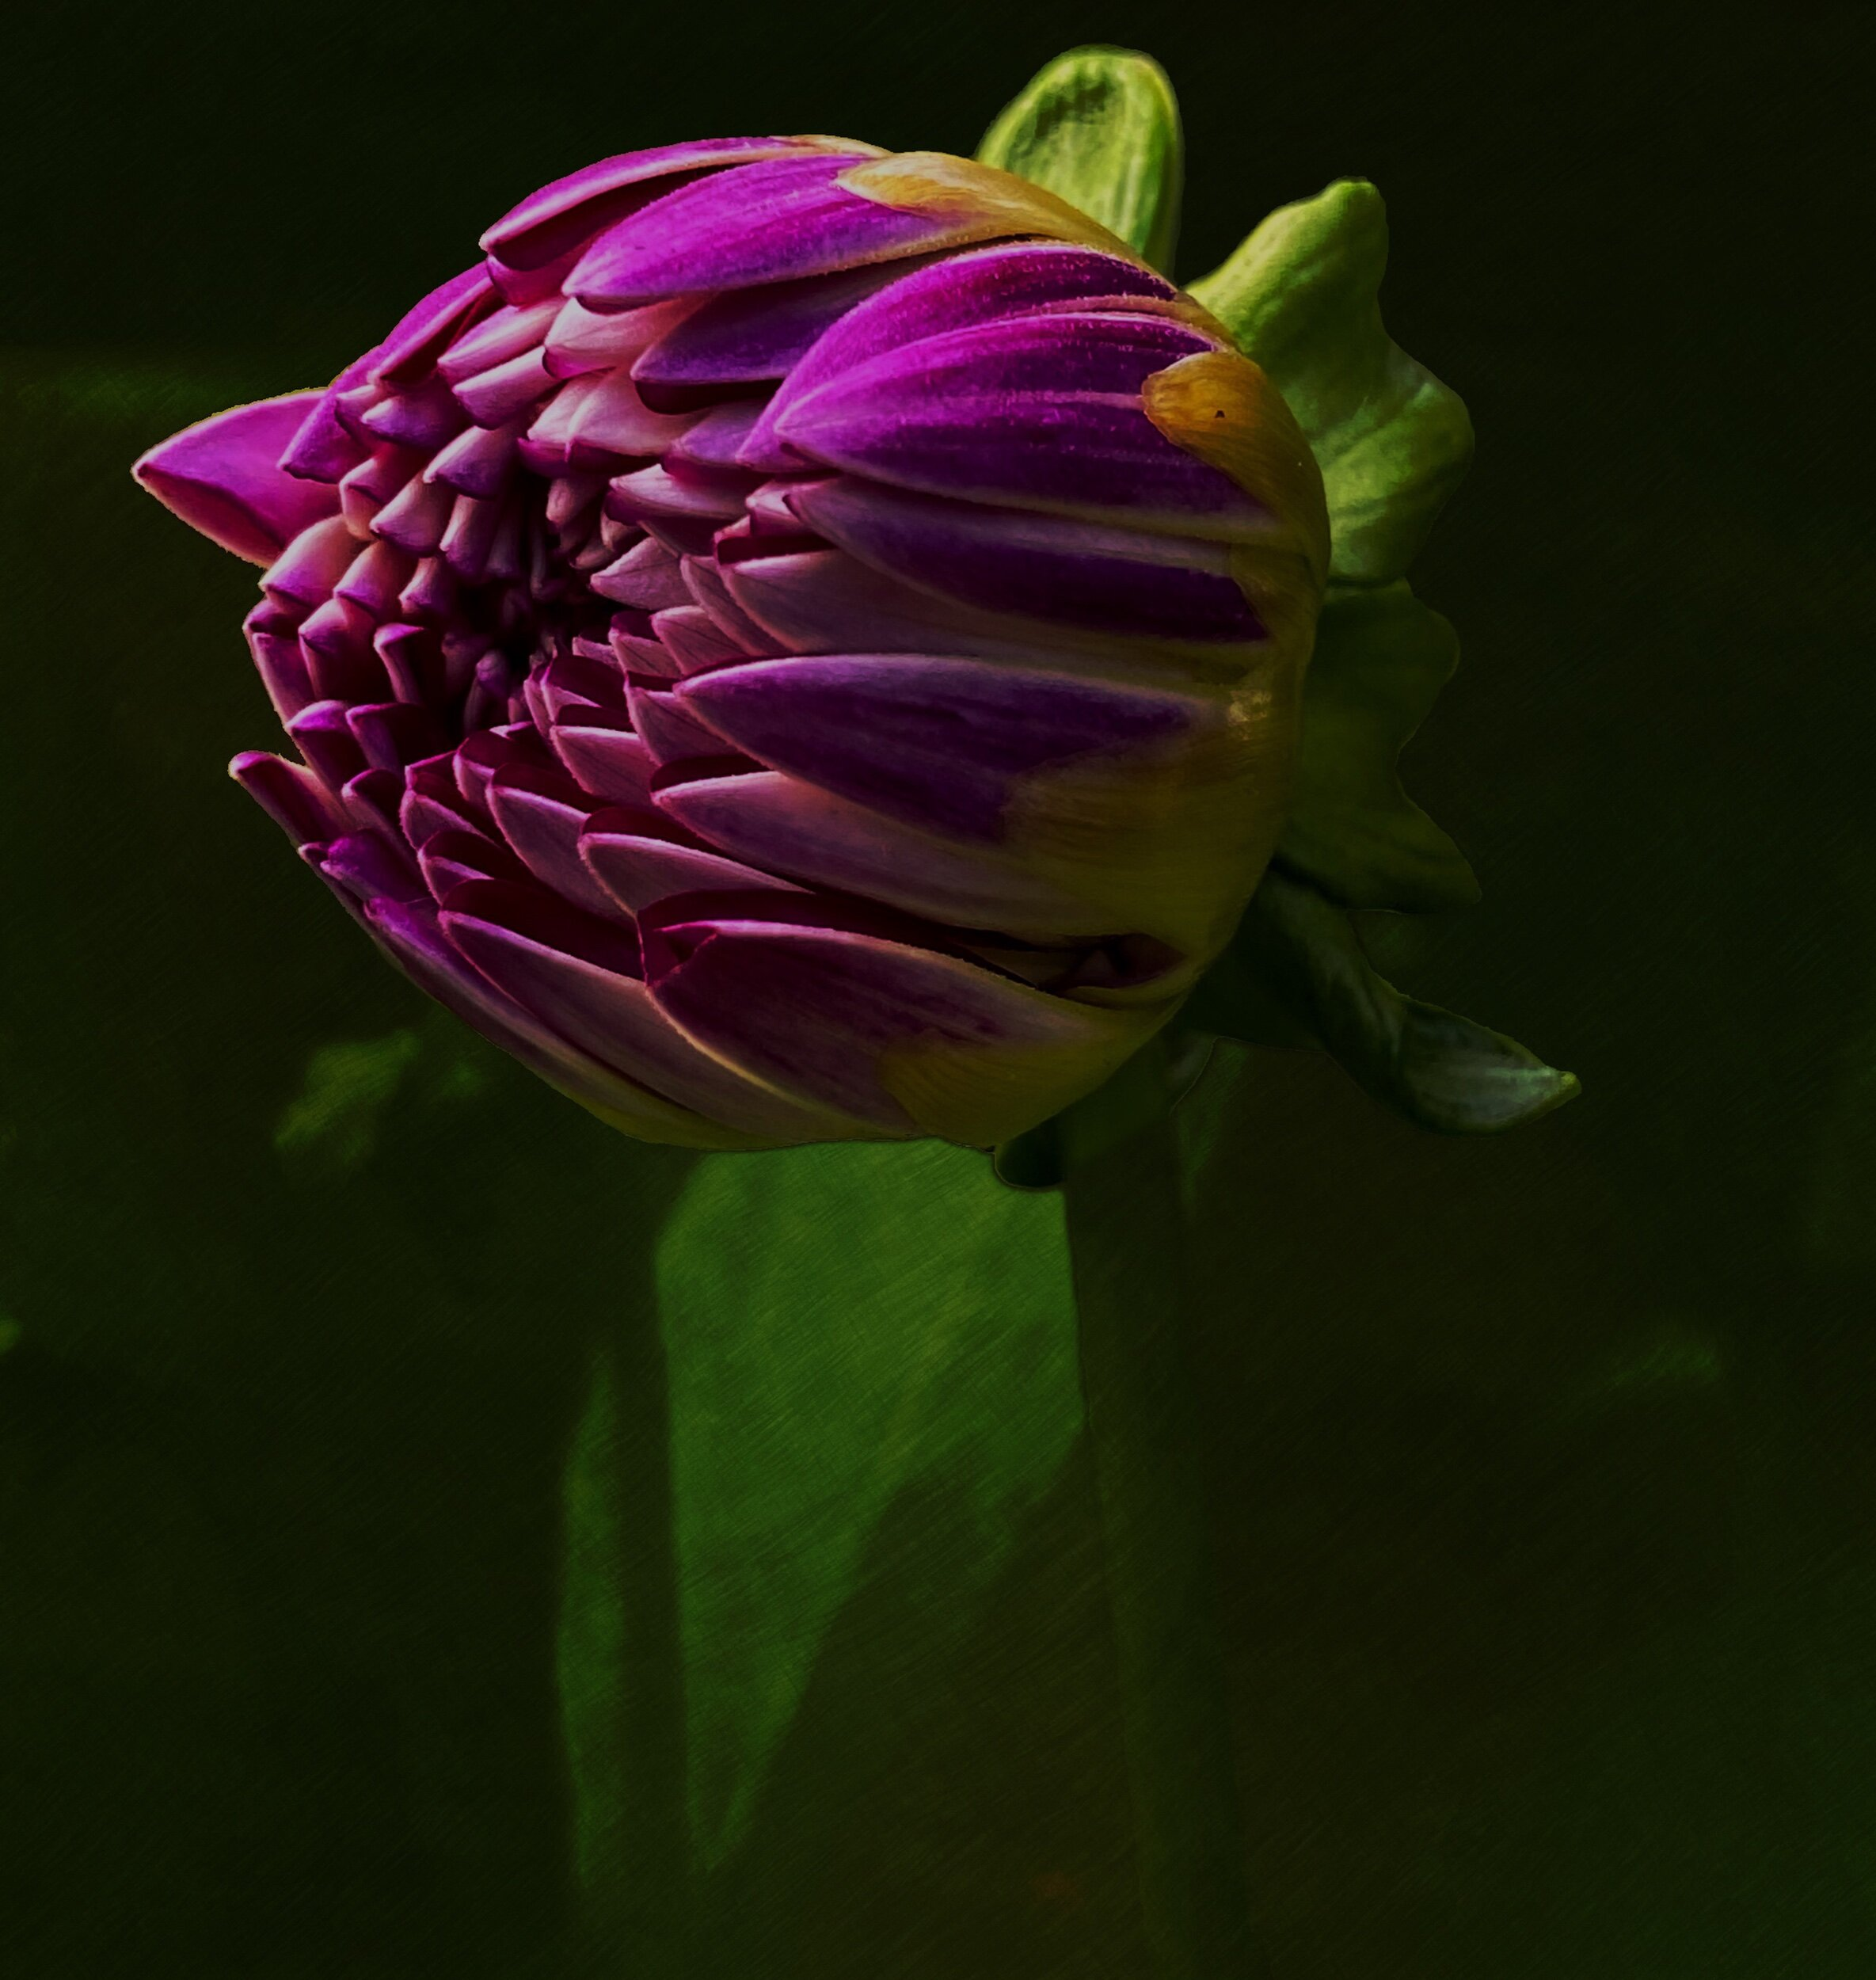 September 24, 2019 - Late bloomer (dahlia).